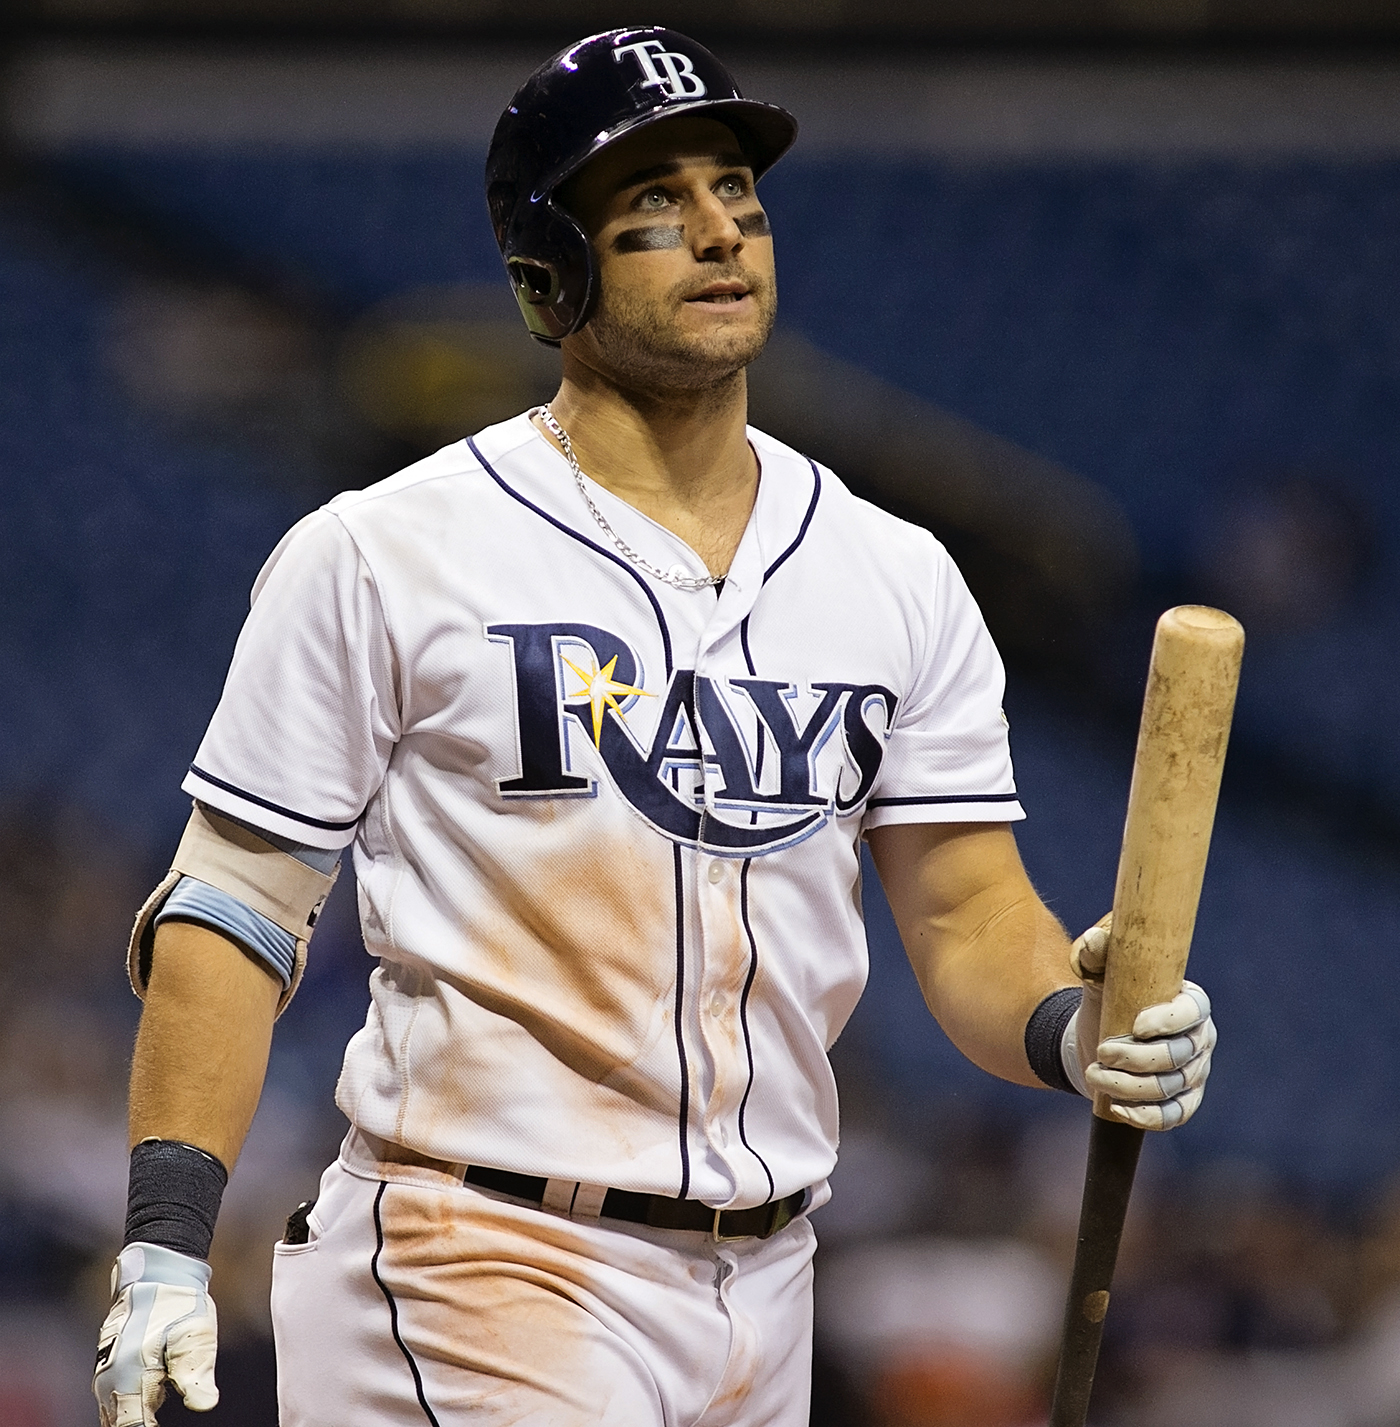 Kiermaier frustrated in his at-bat against Twins./CARMEN MANDATO